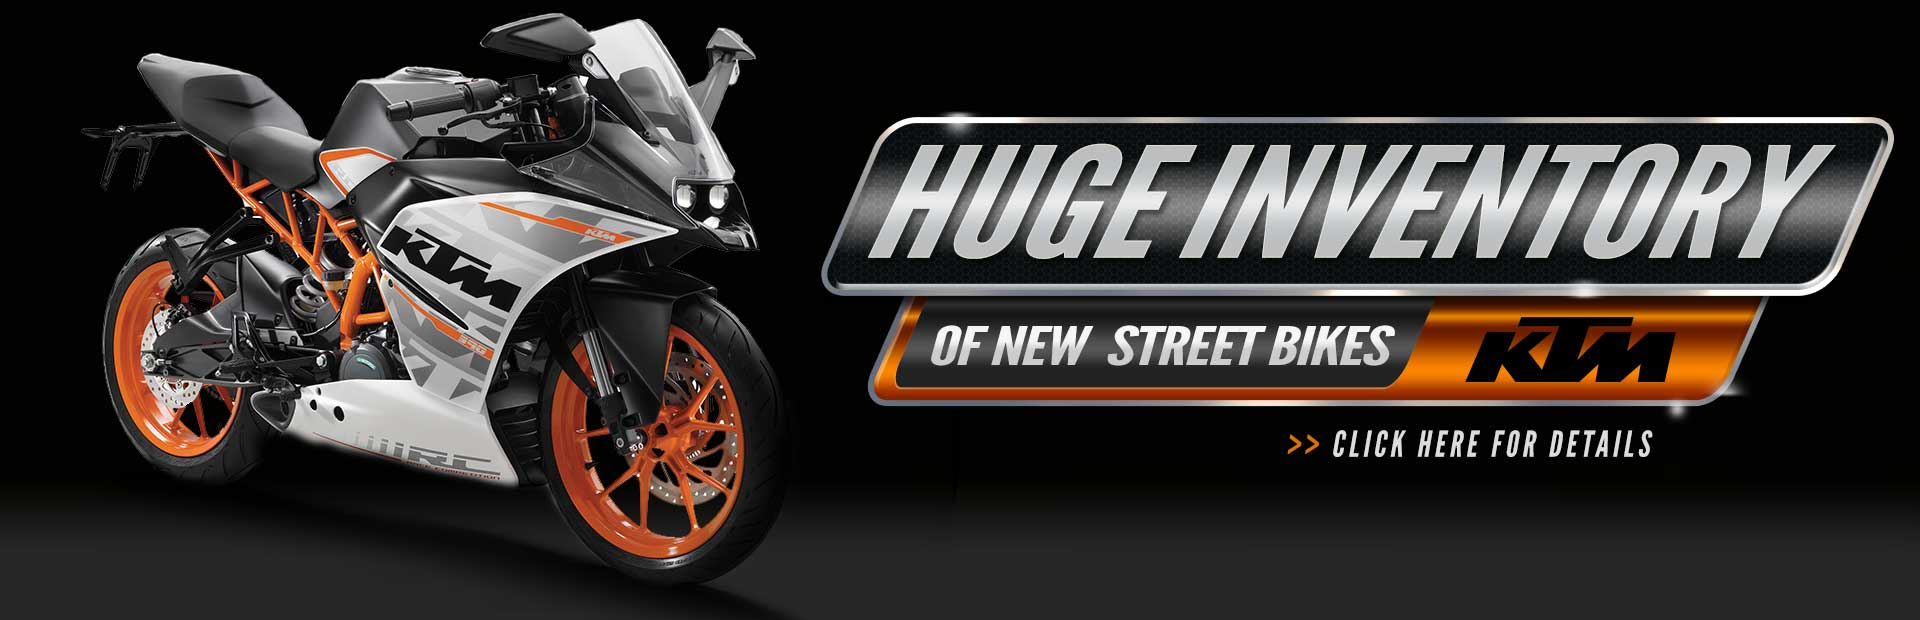 Click here to check out our huge inventory of new KTM street bikes.